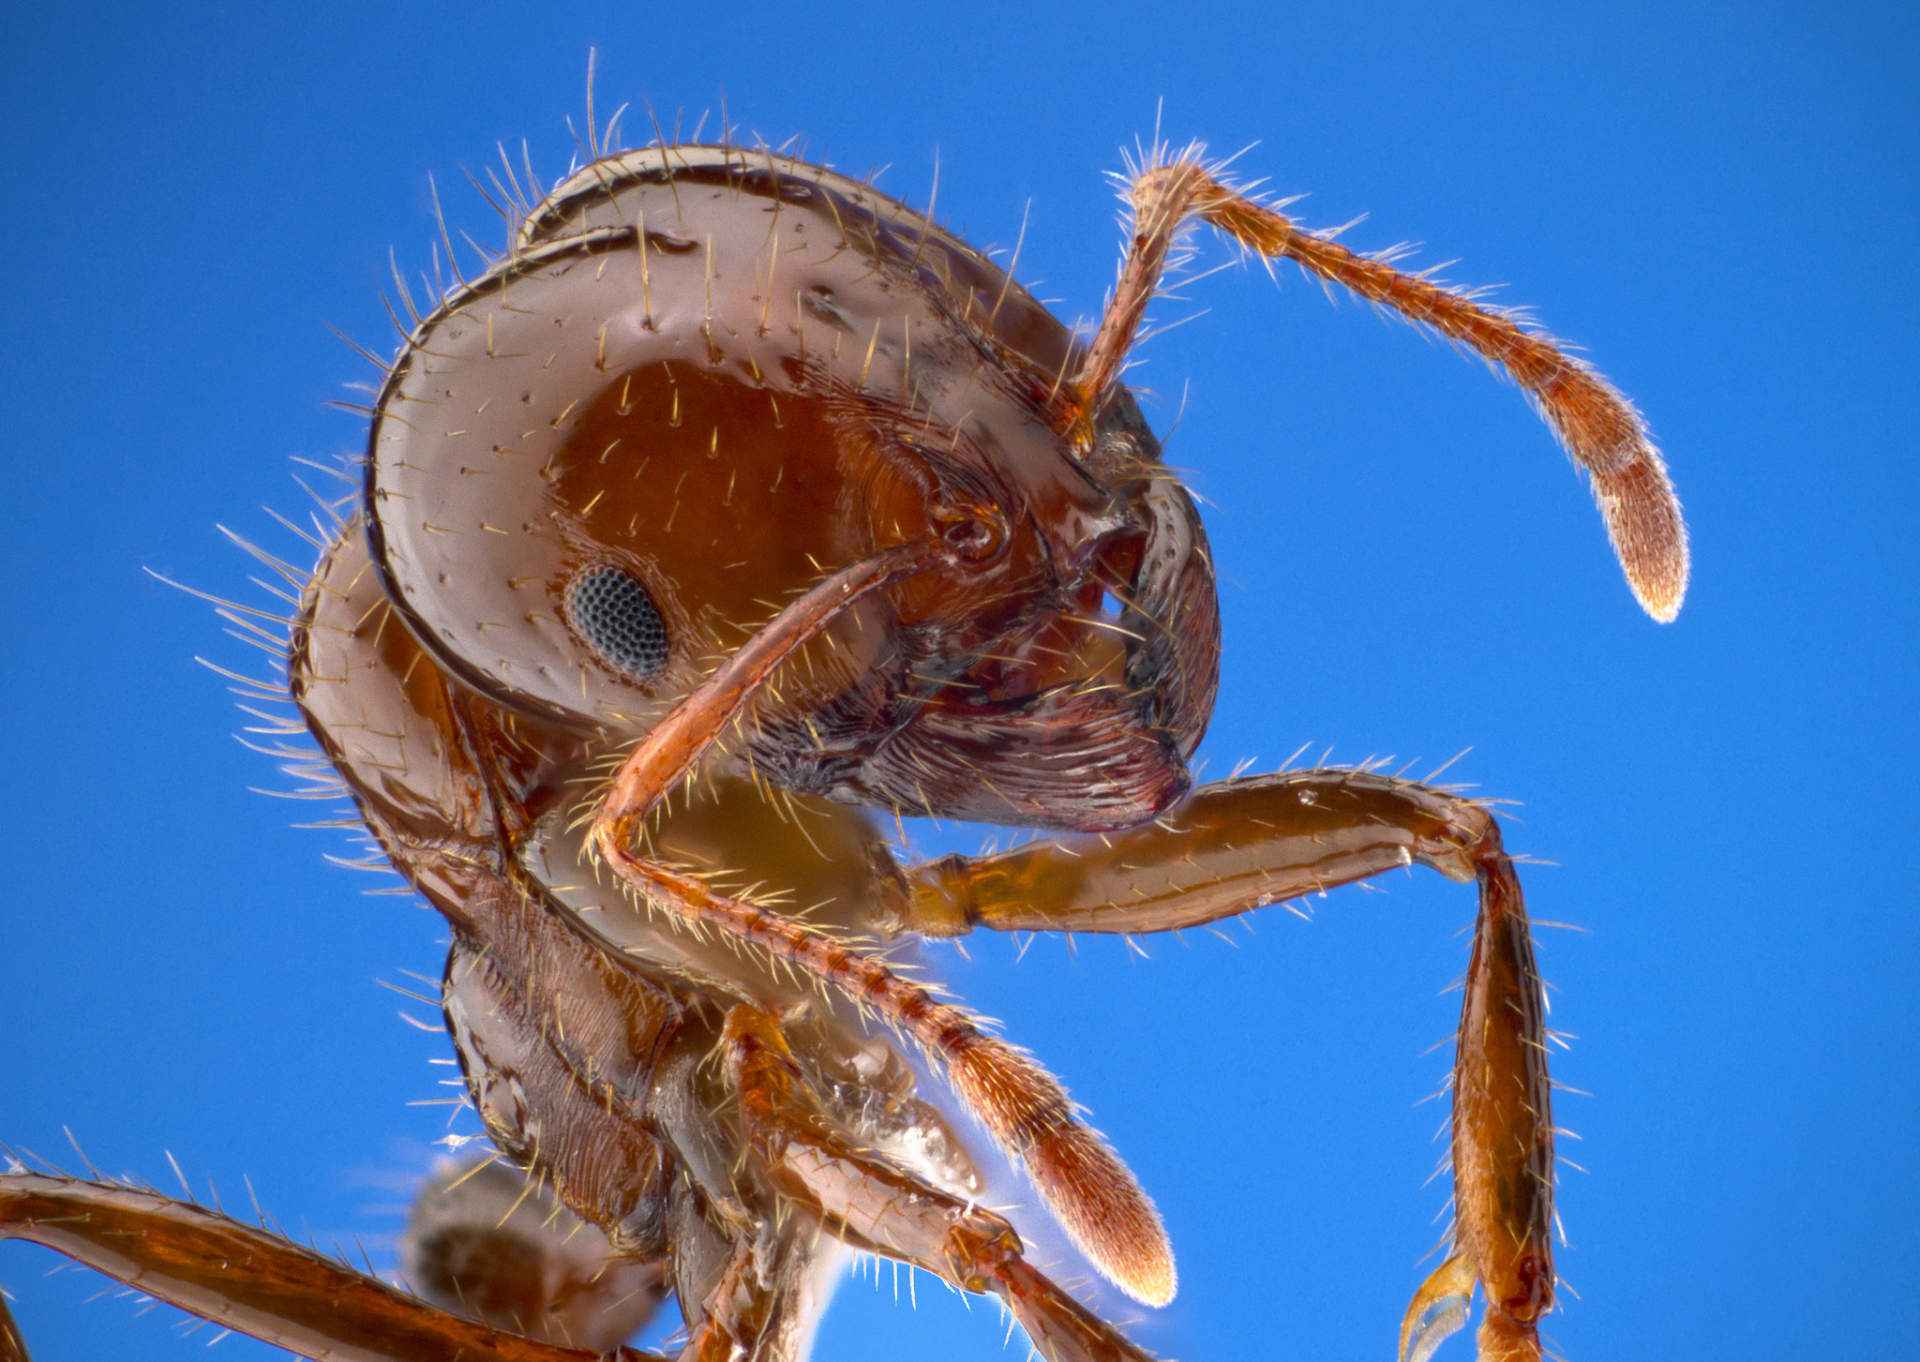 close up of fire ant worker